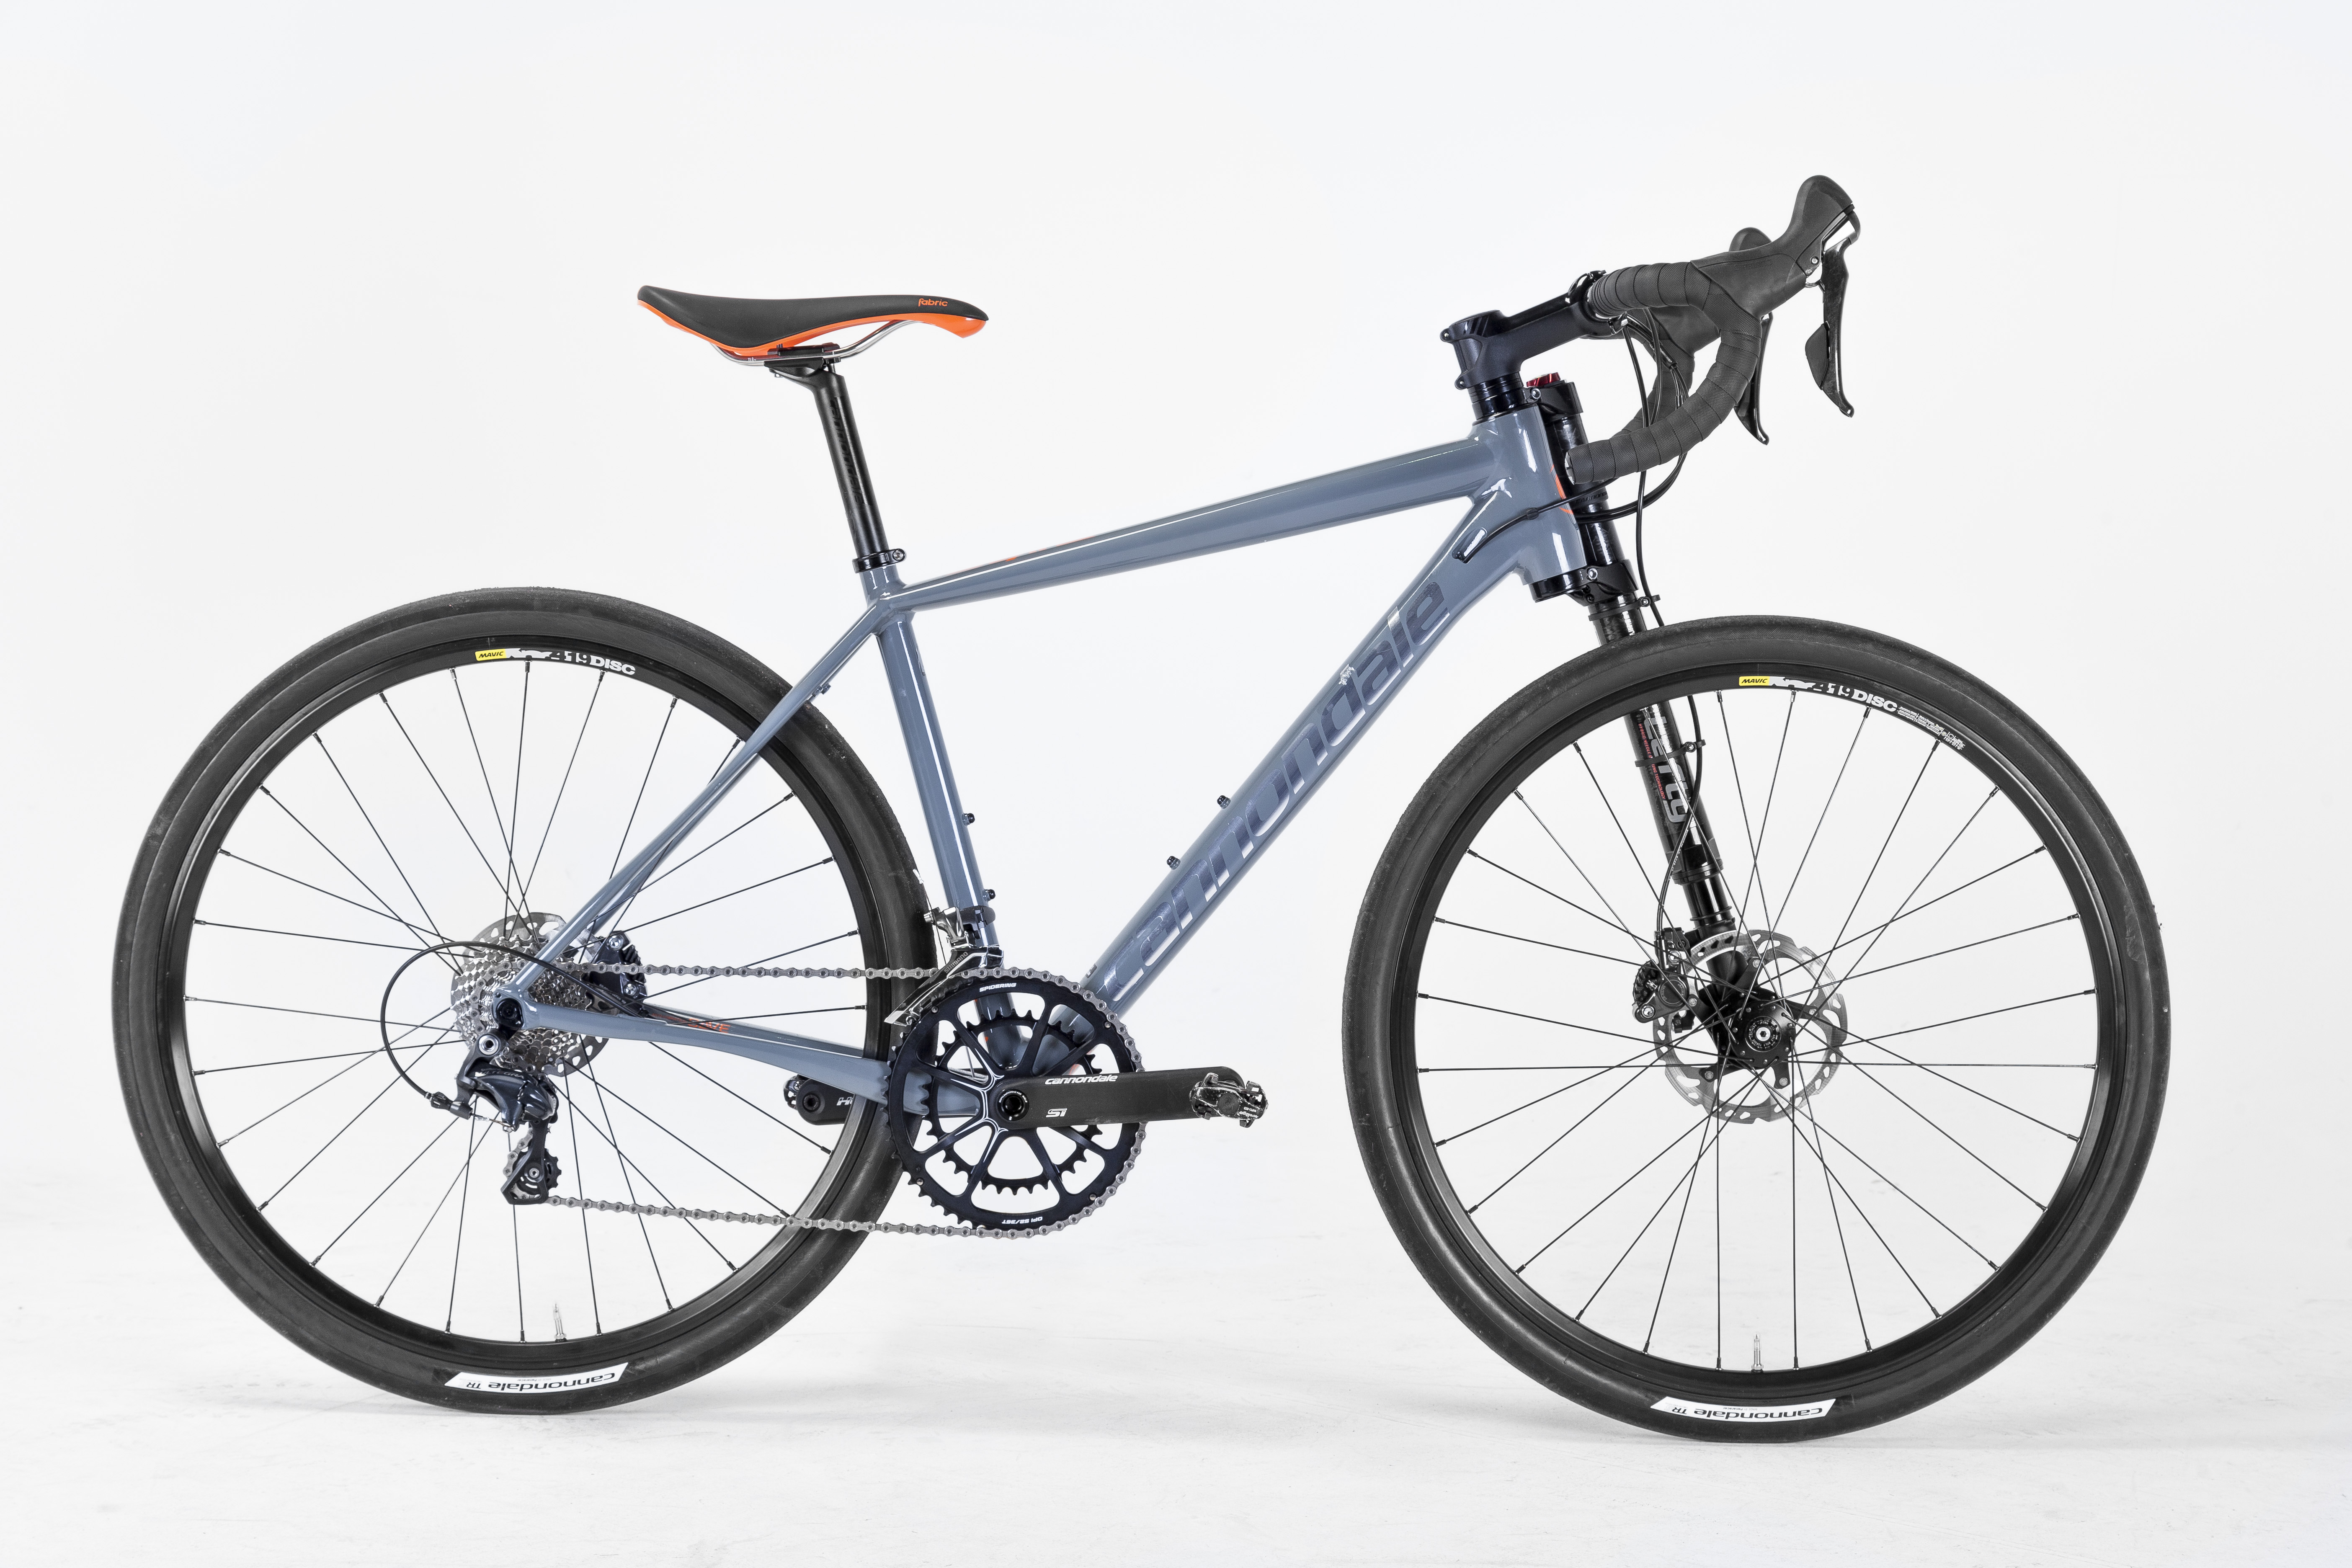 546bad536c7 Cannondale Slate review - Cycling Weekly